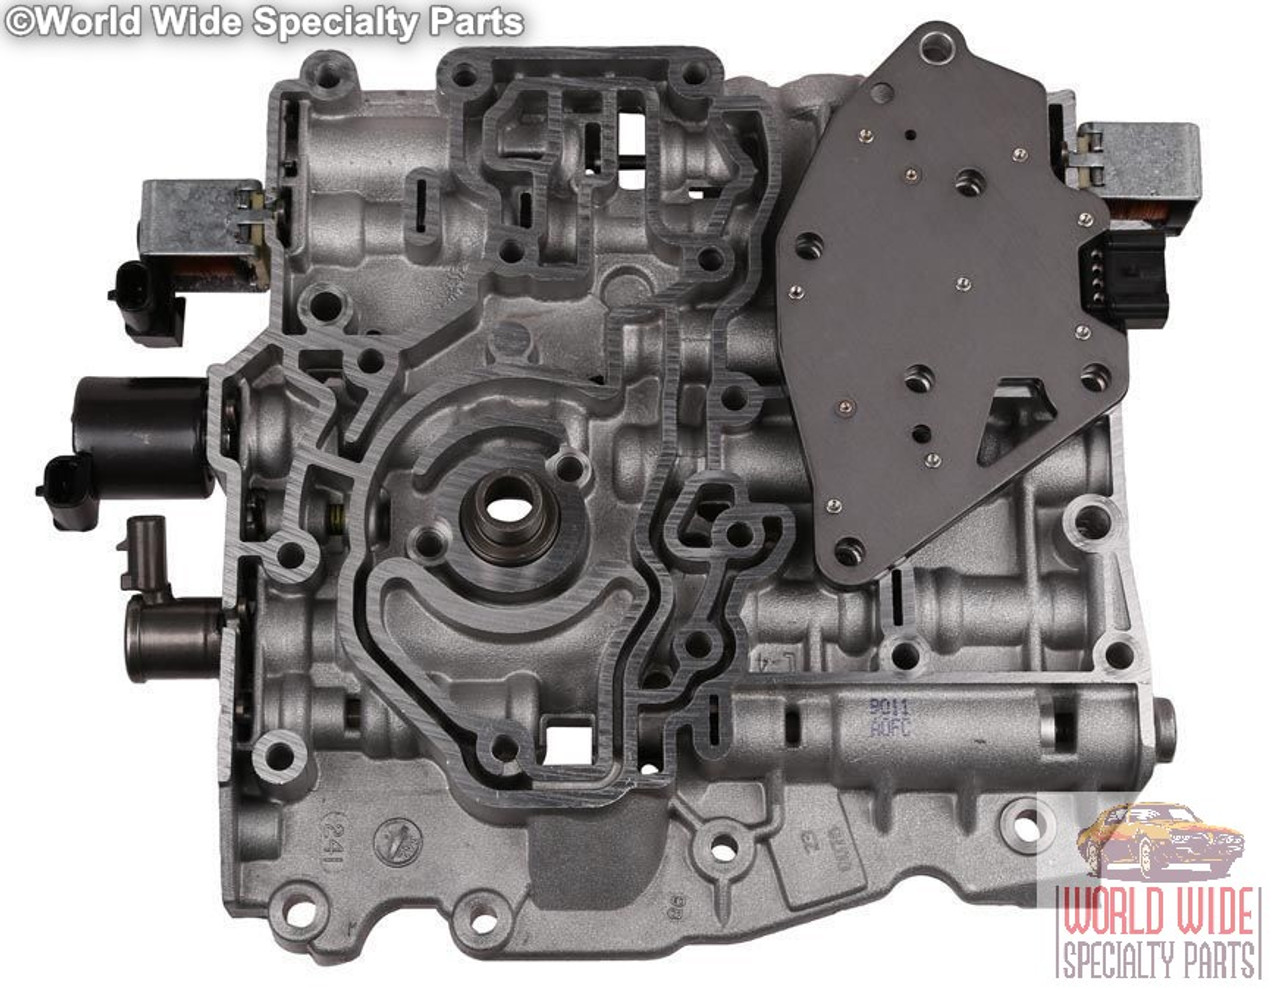 4L80E Valve Body 1997-2002 rebuilt, updated and tested